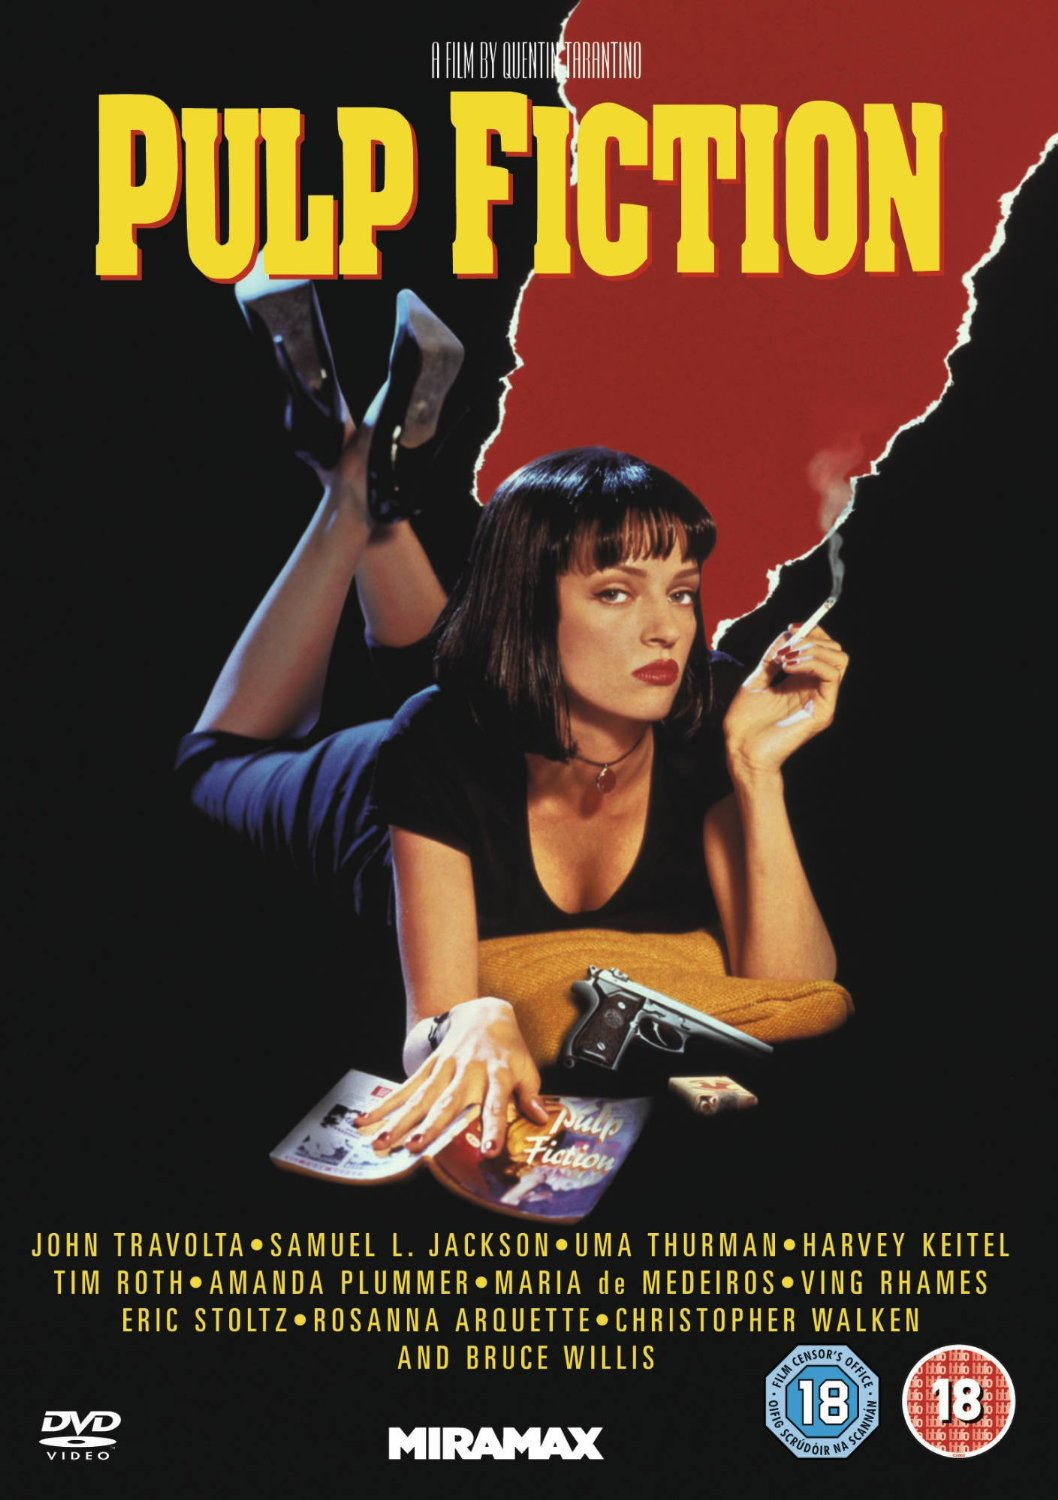 Buy Pulp Fiction